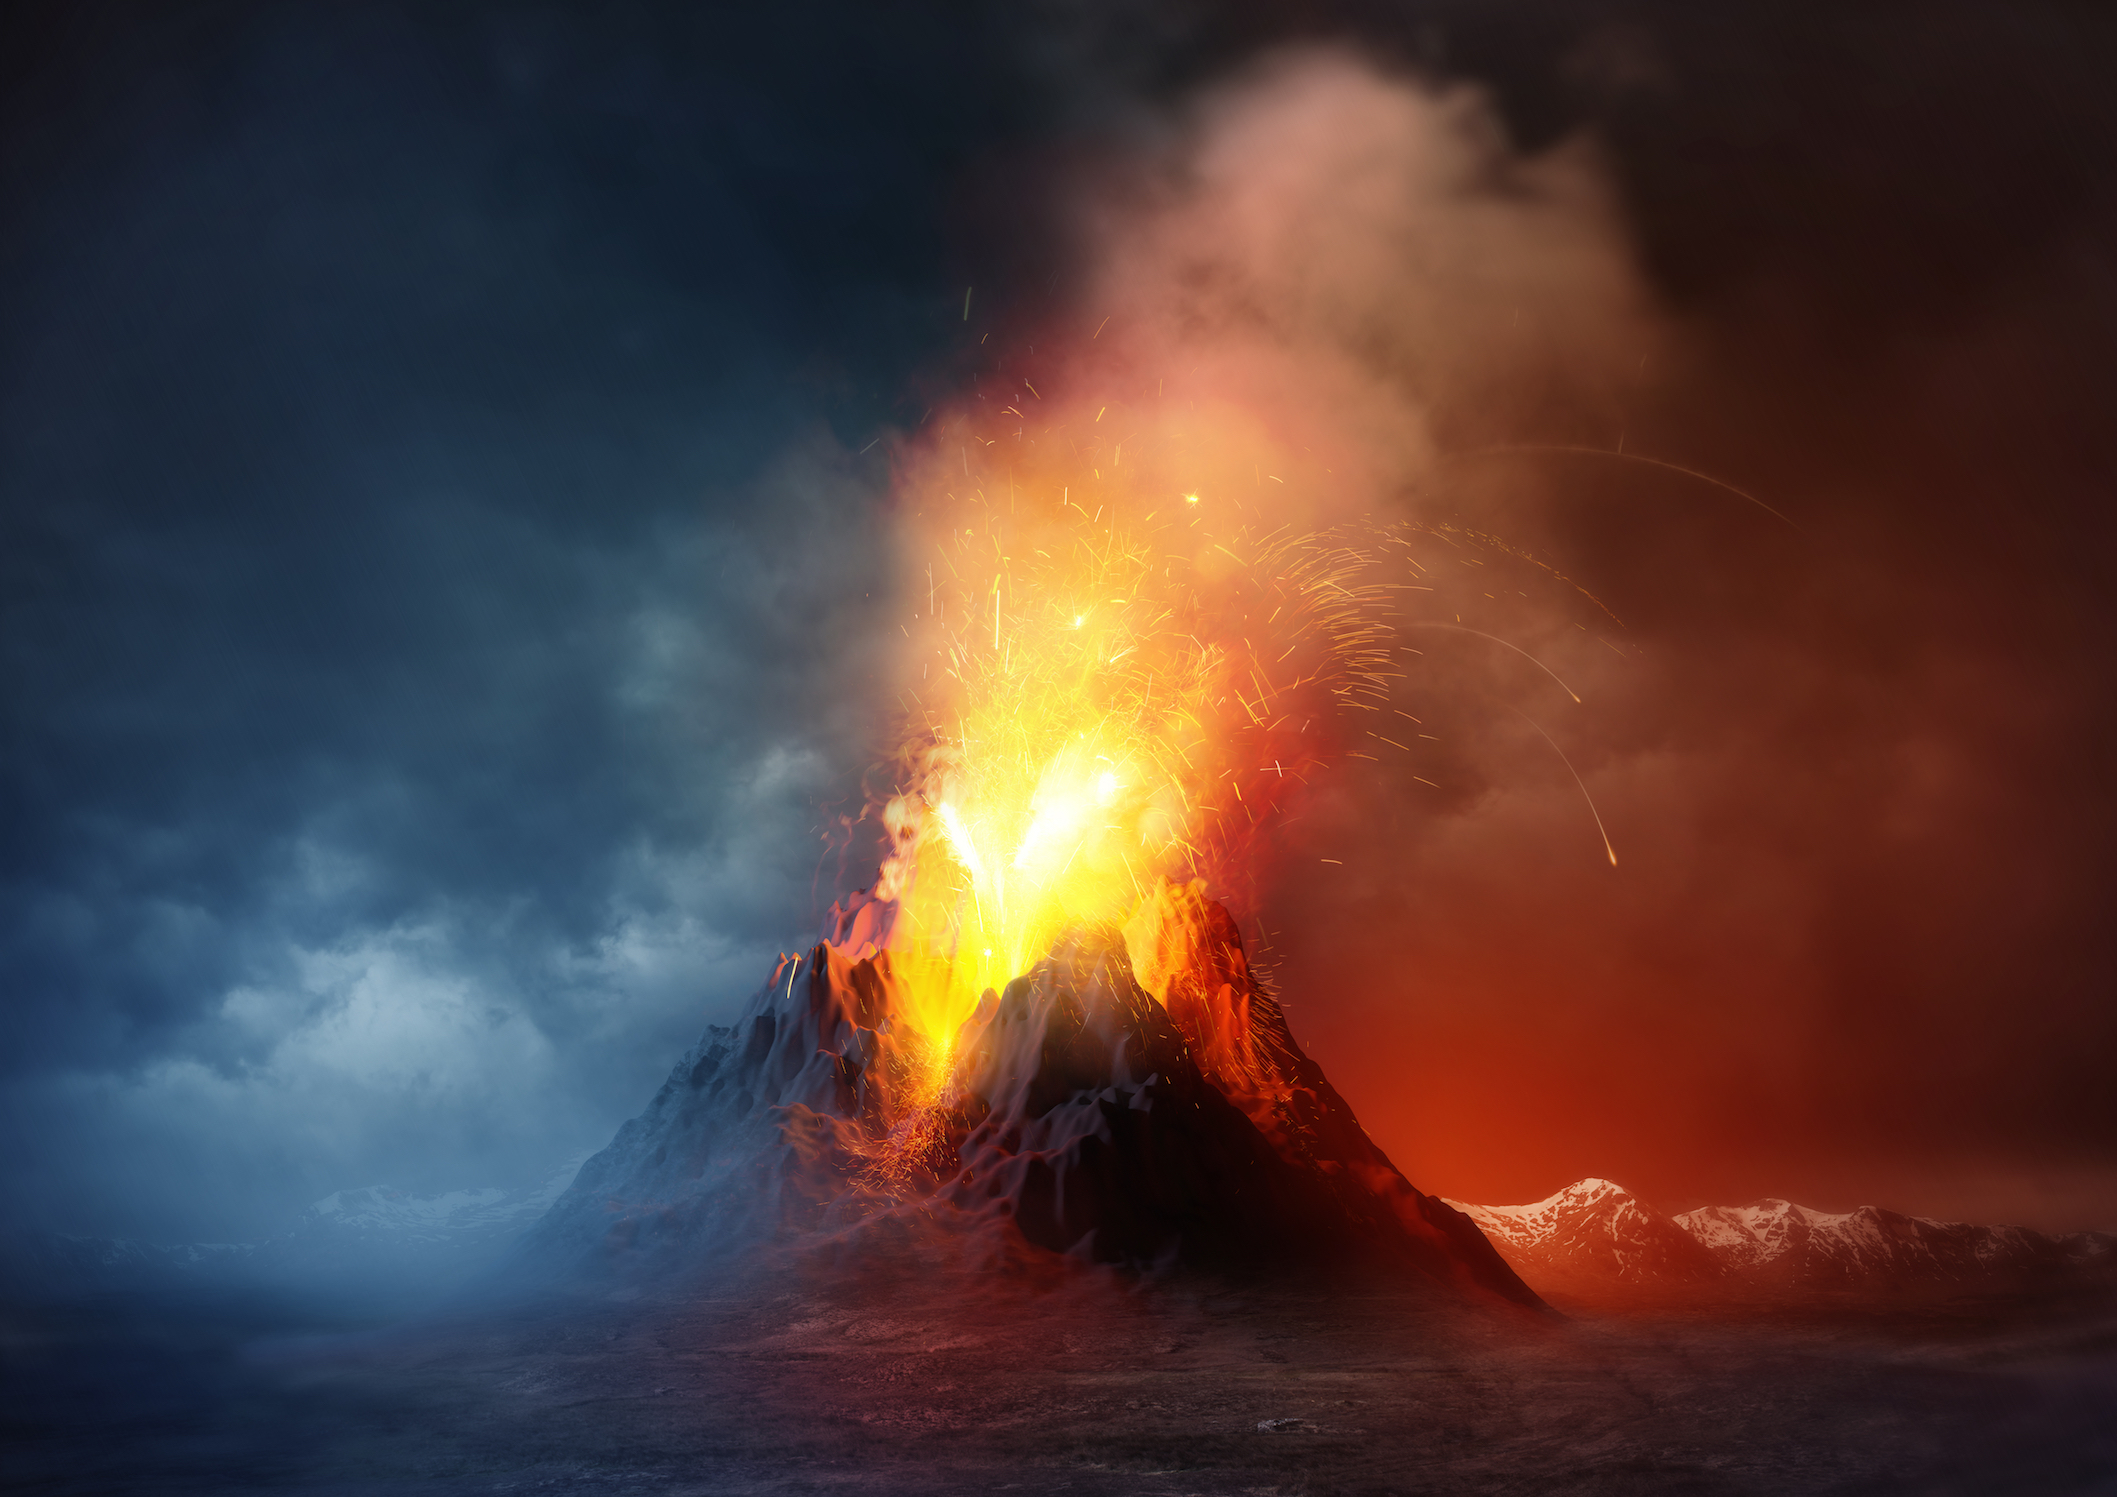 Shifts in surface temperatures and geological landscape from climate change could cause an uptick in volcanic activity.